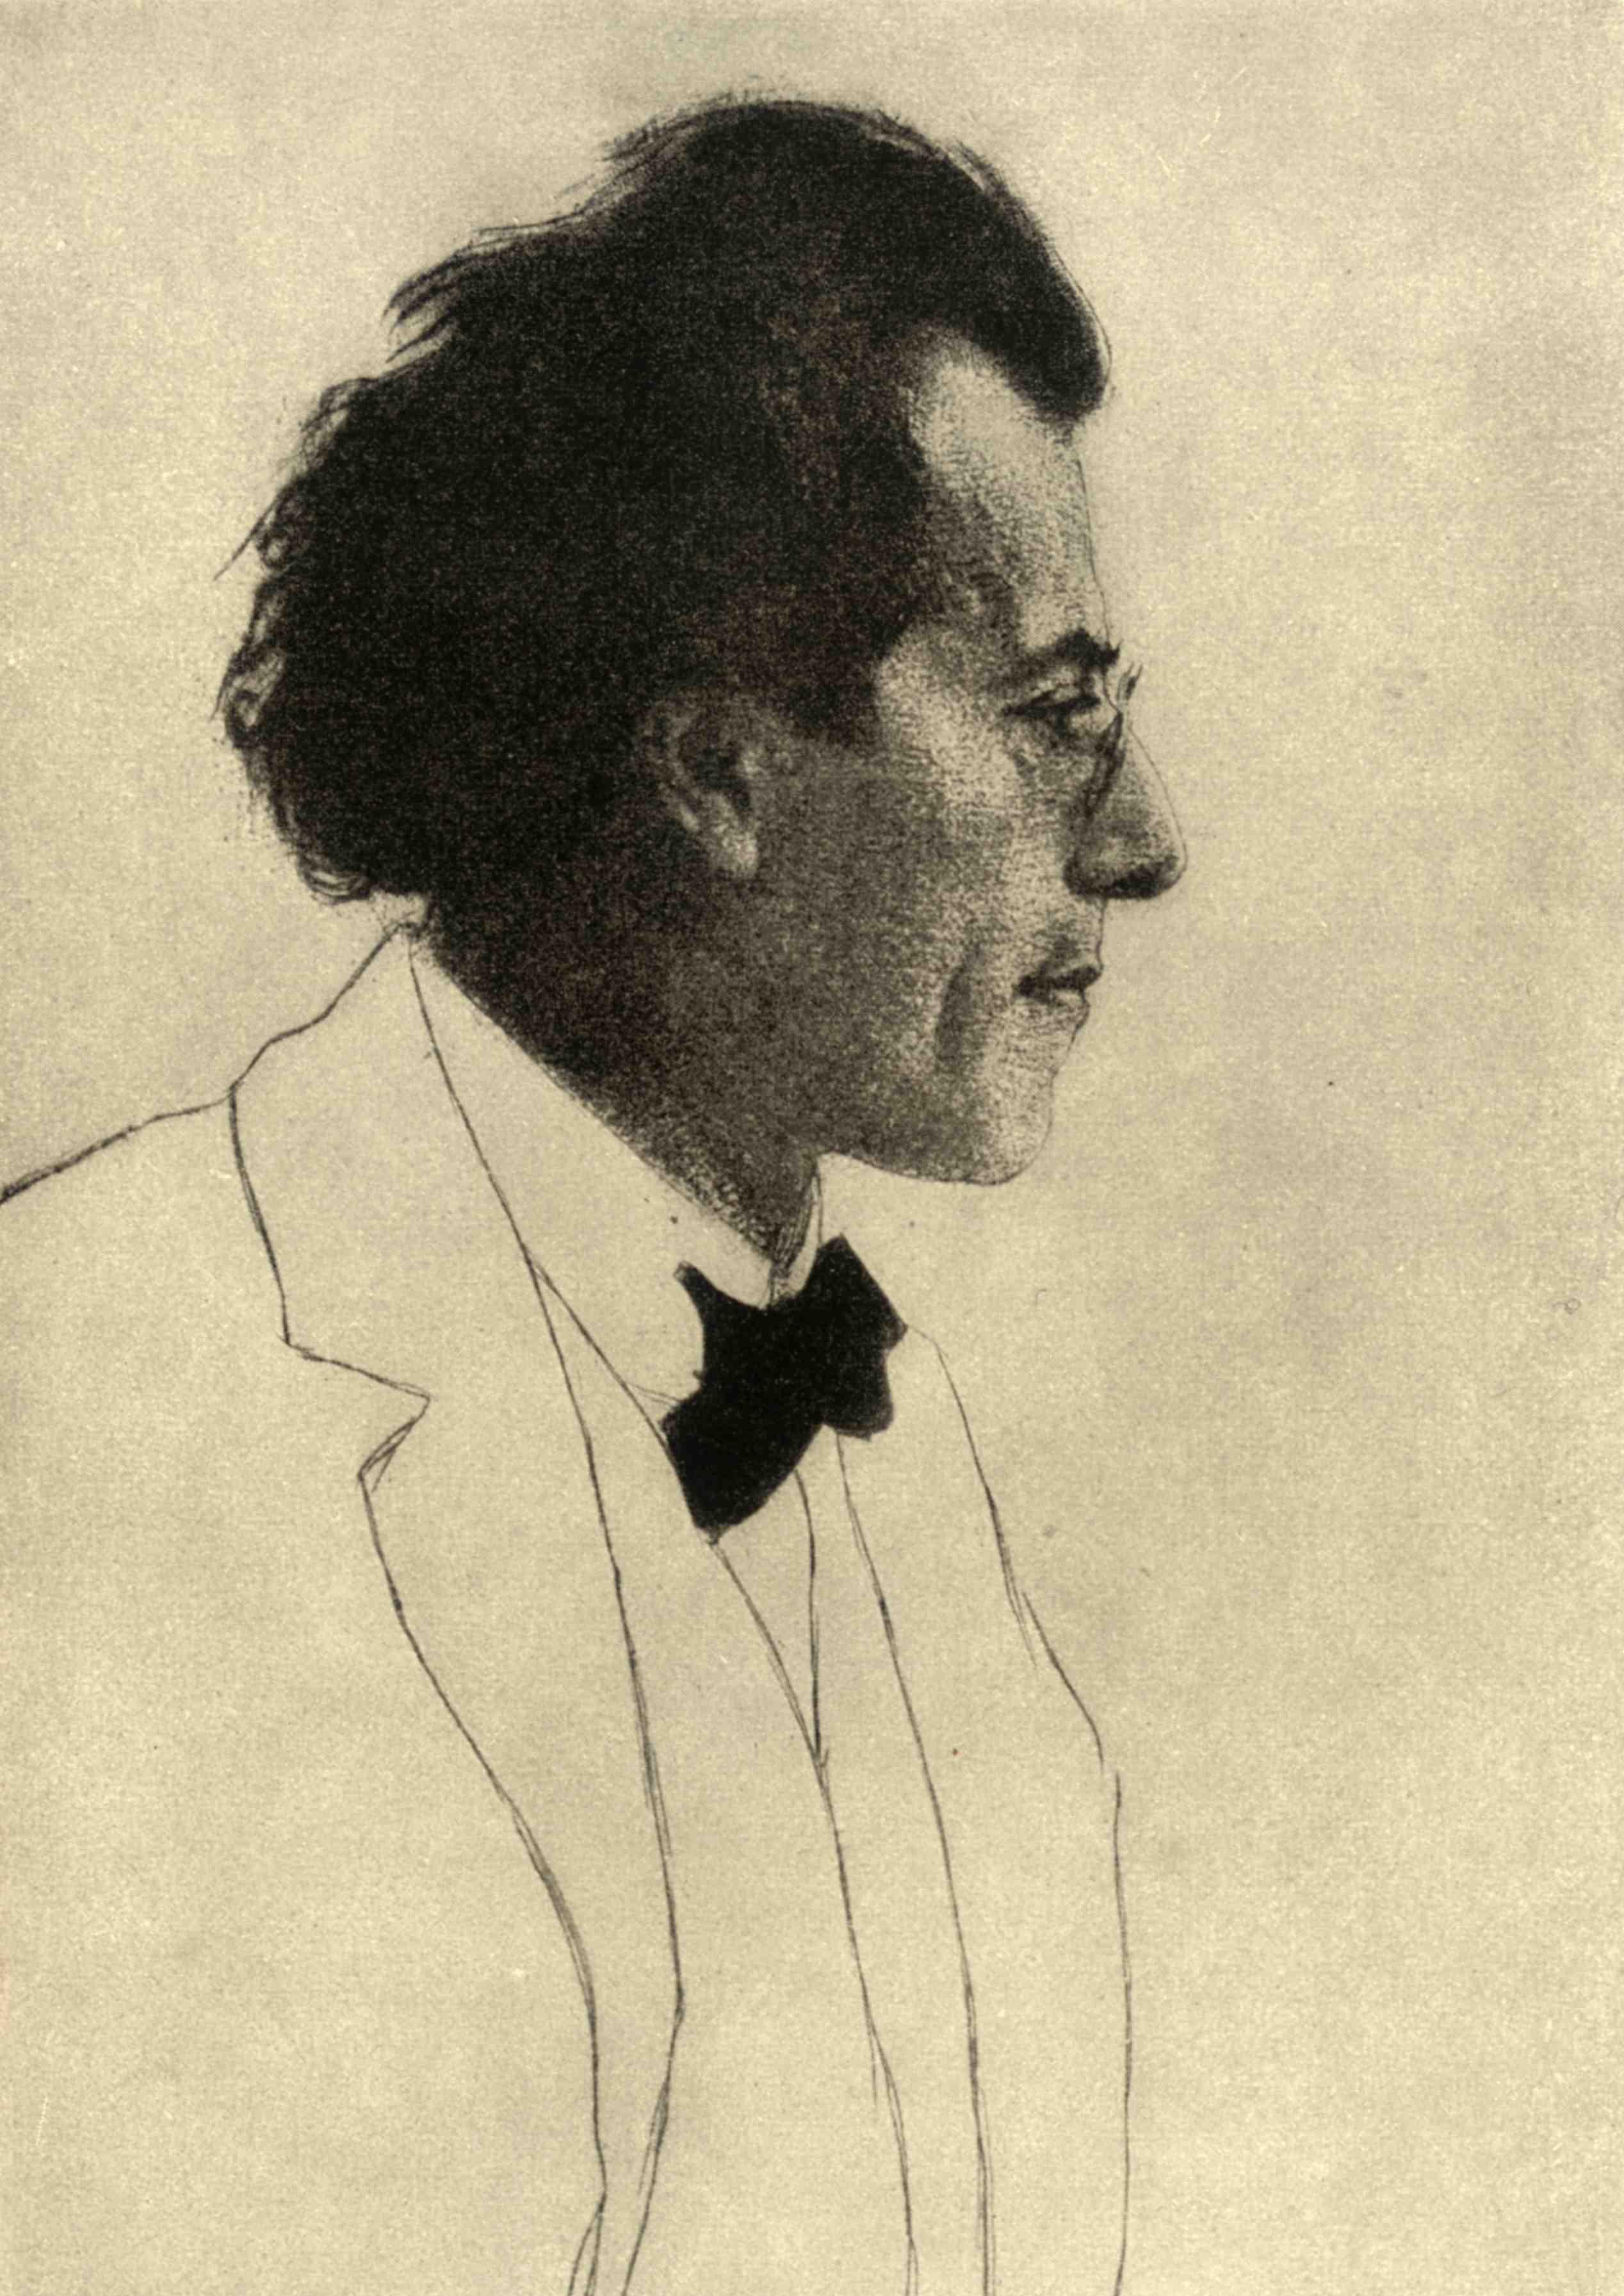 The Mahler symphonies: What's in a name?